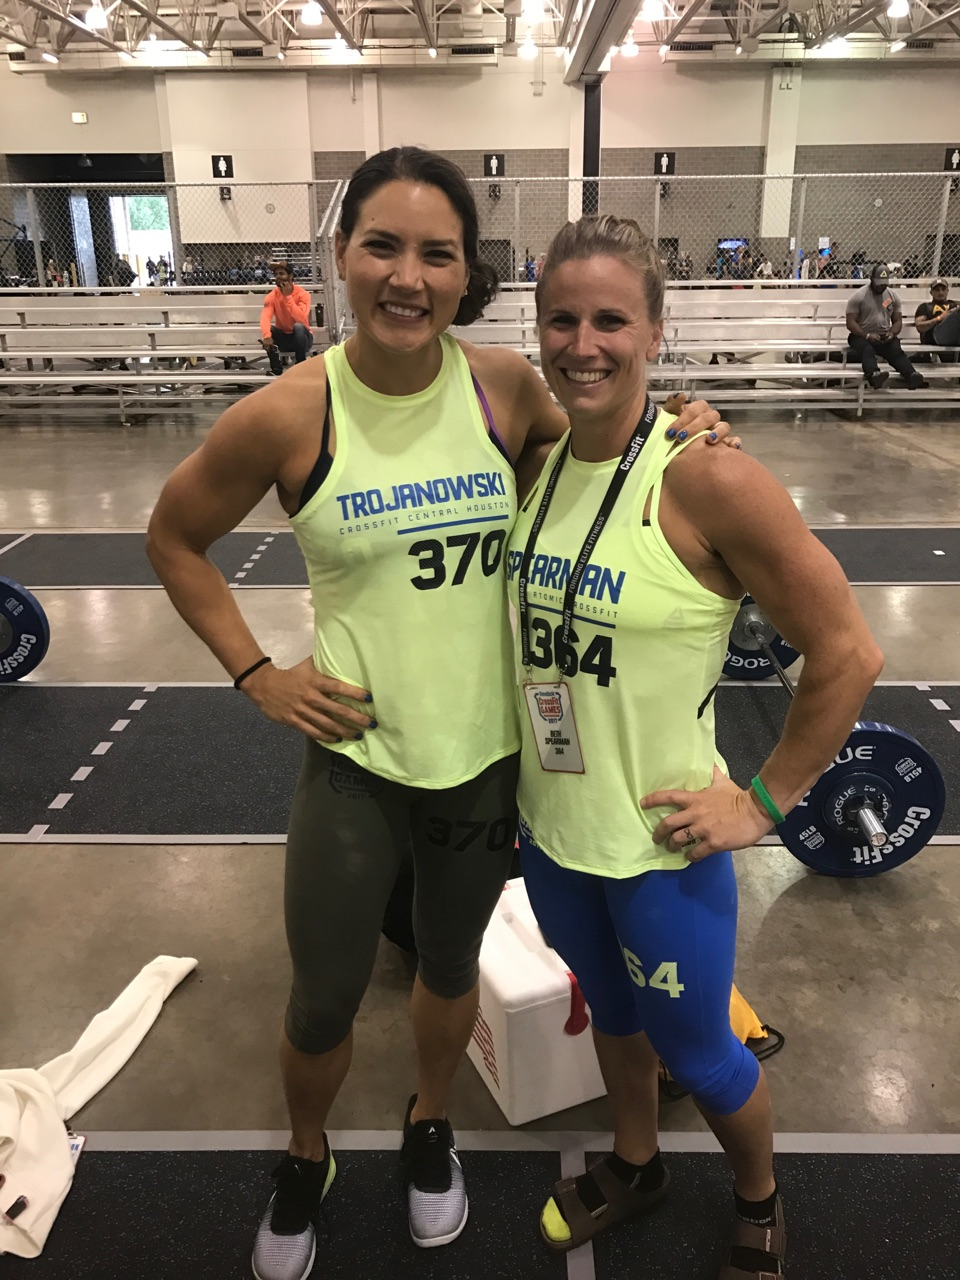 Day one of invictus at the crossfit games